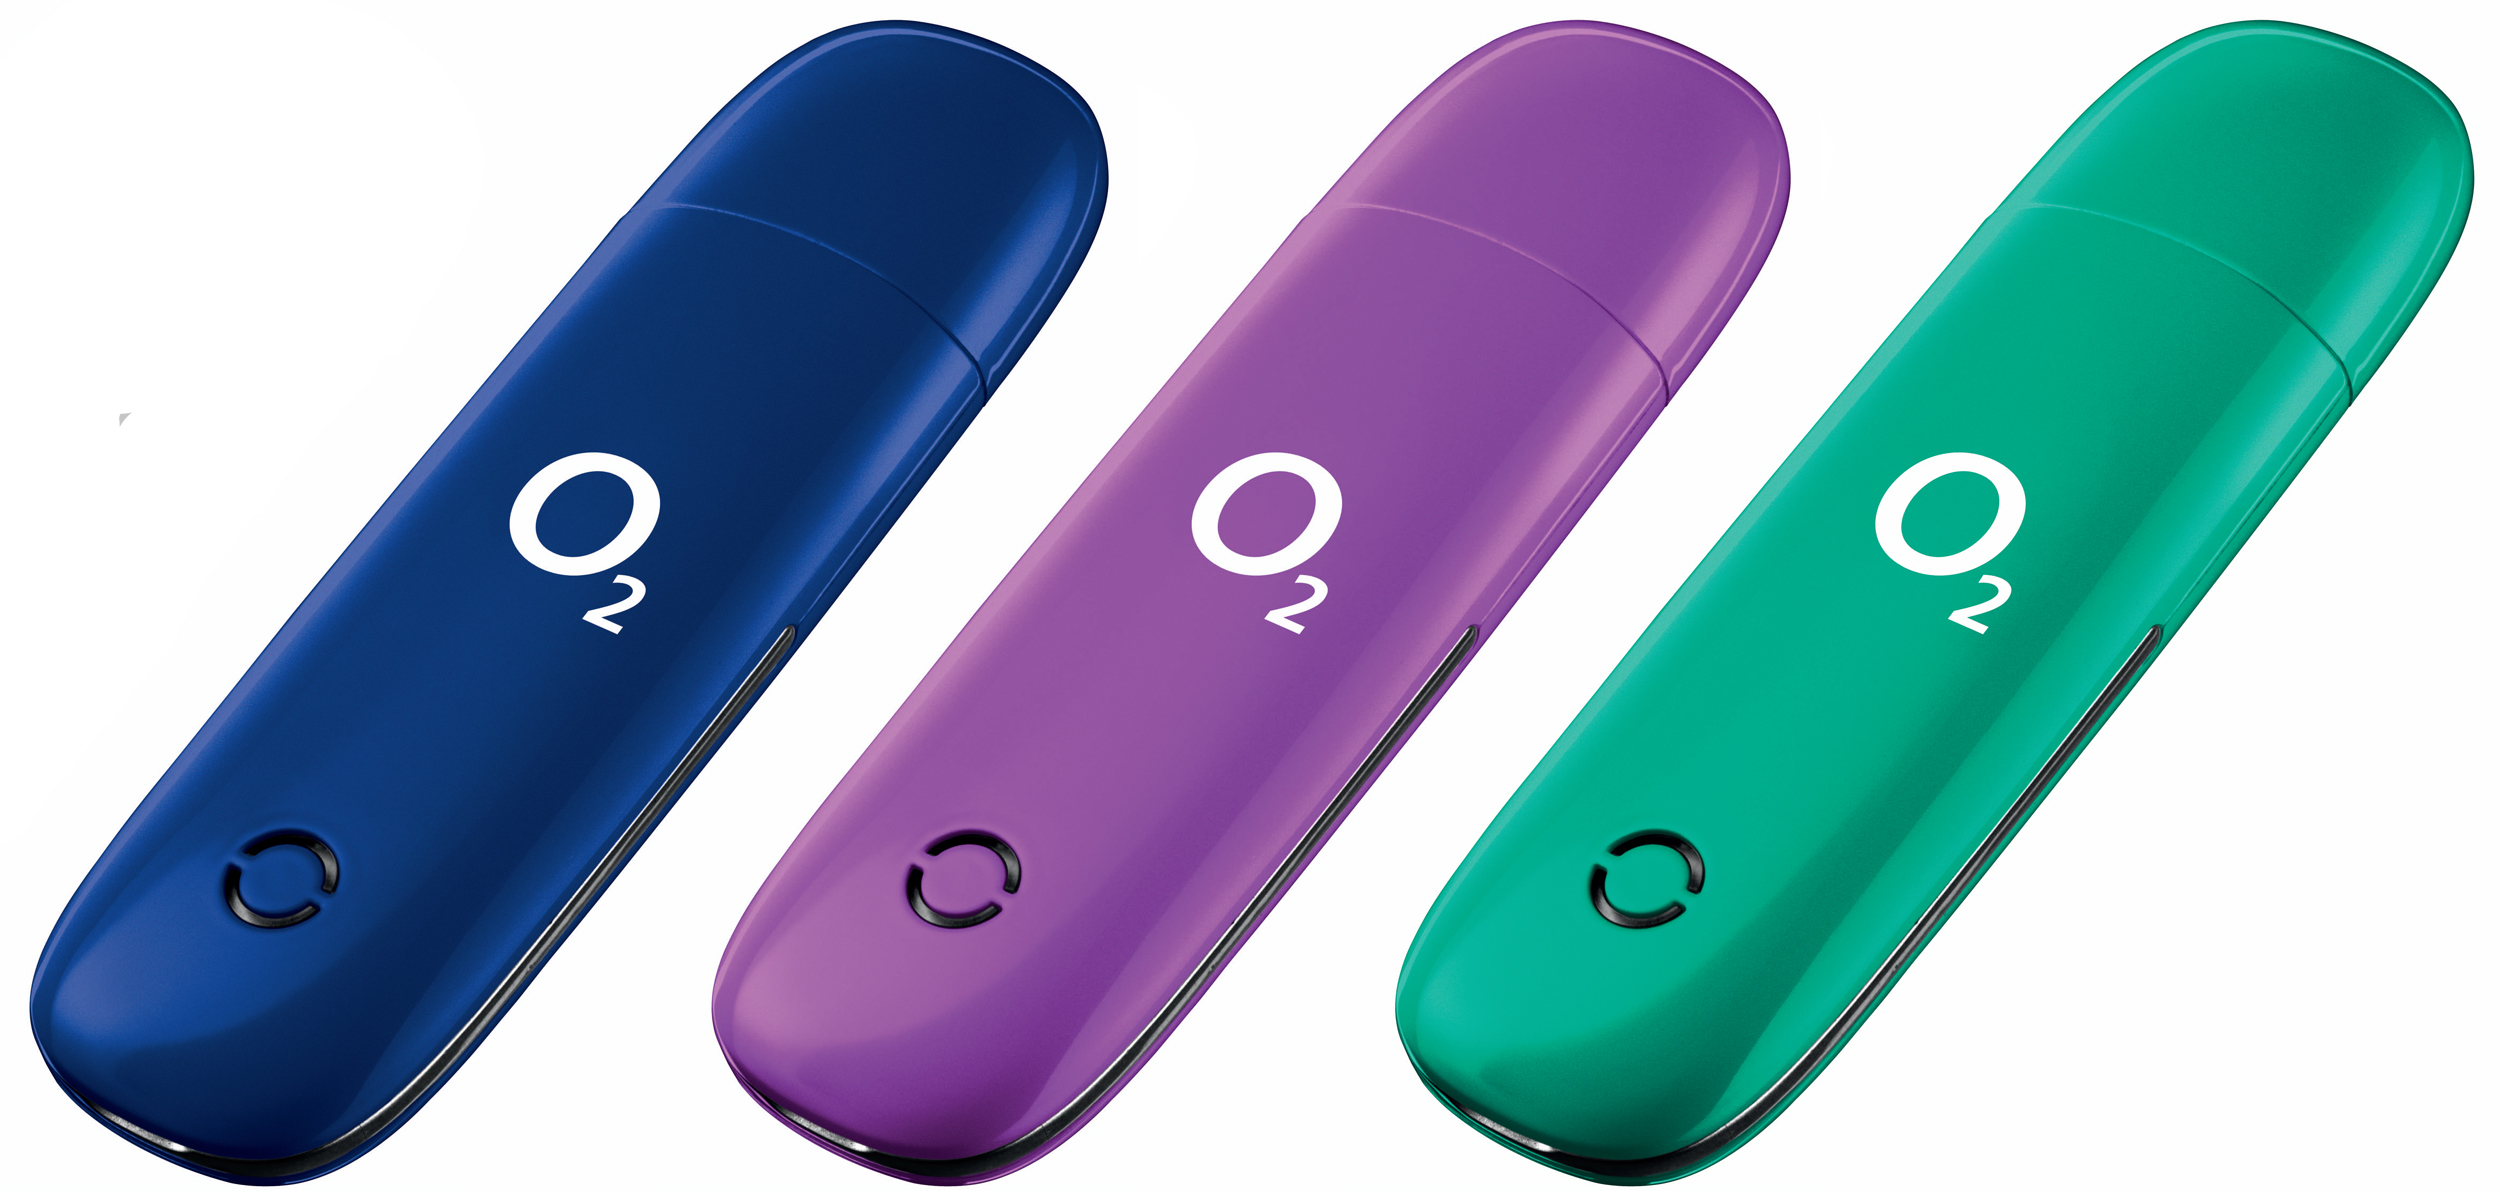 O2 Free Prepaid The Fastest Surfstick From O2 Now Also For Prepaid